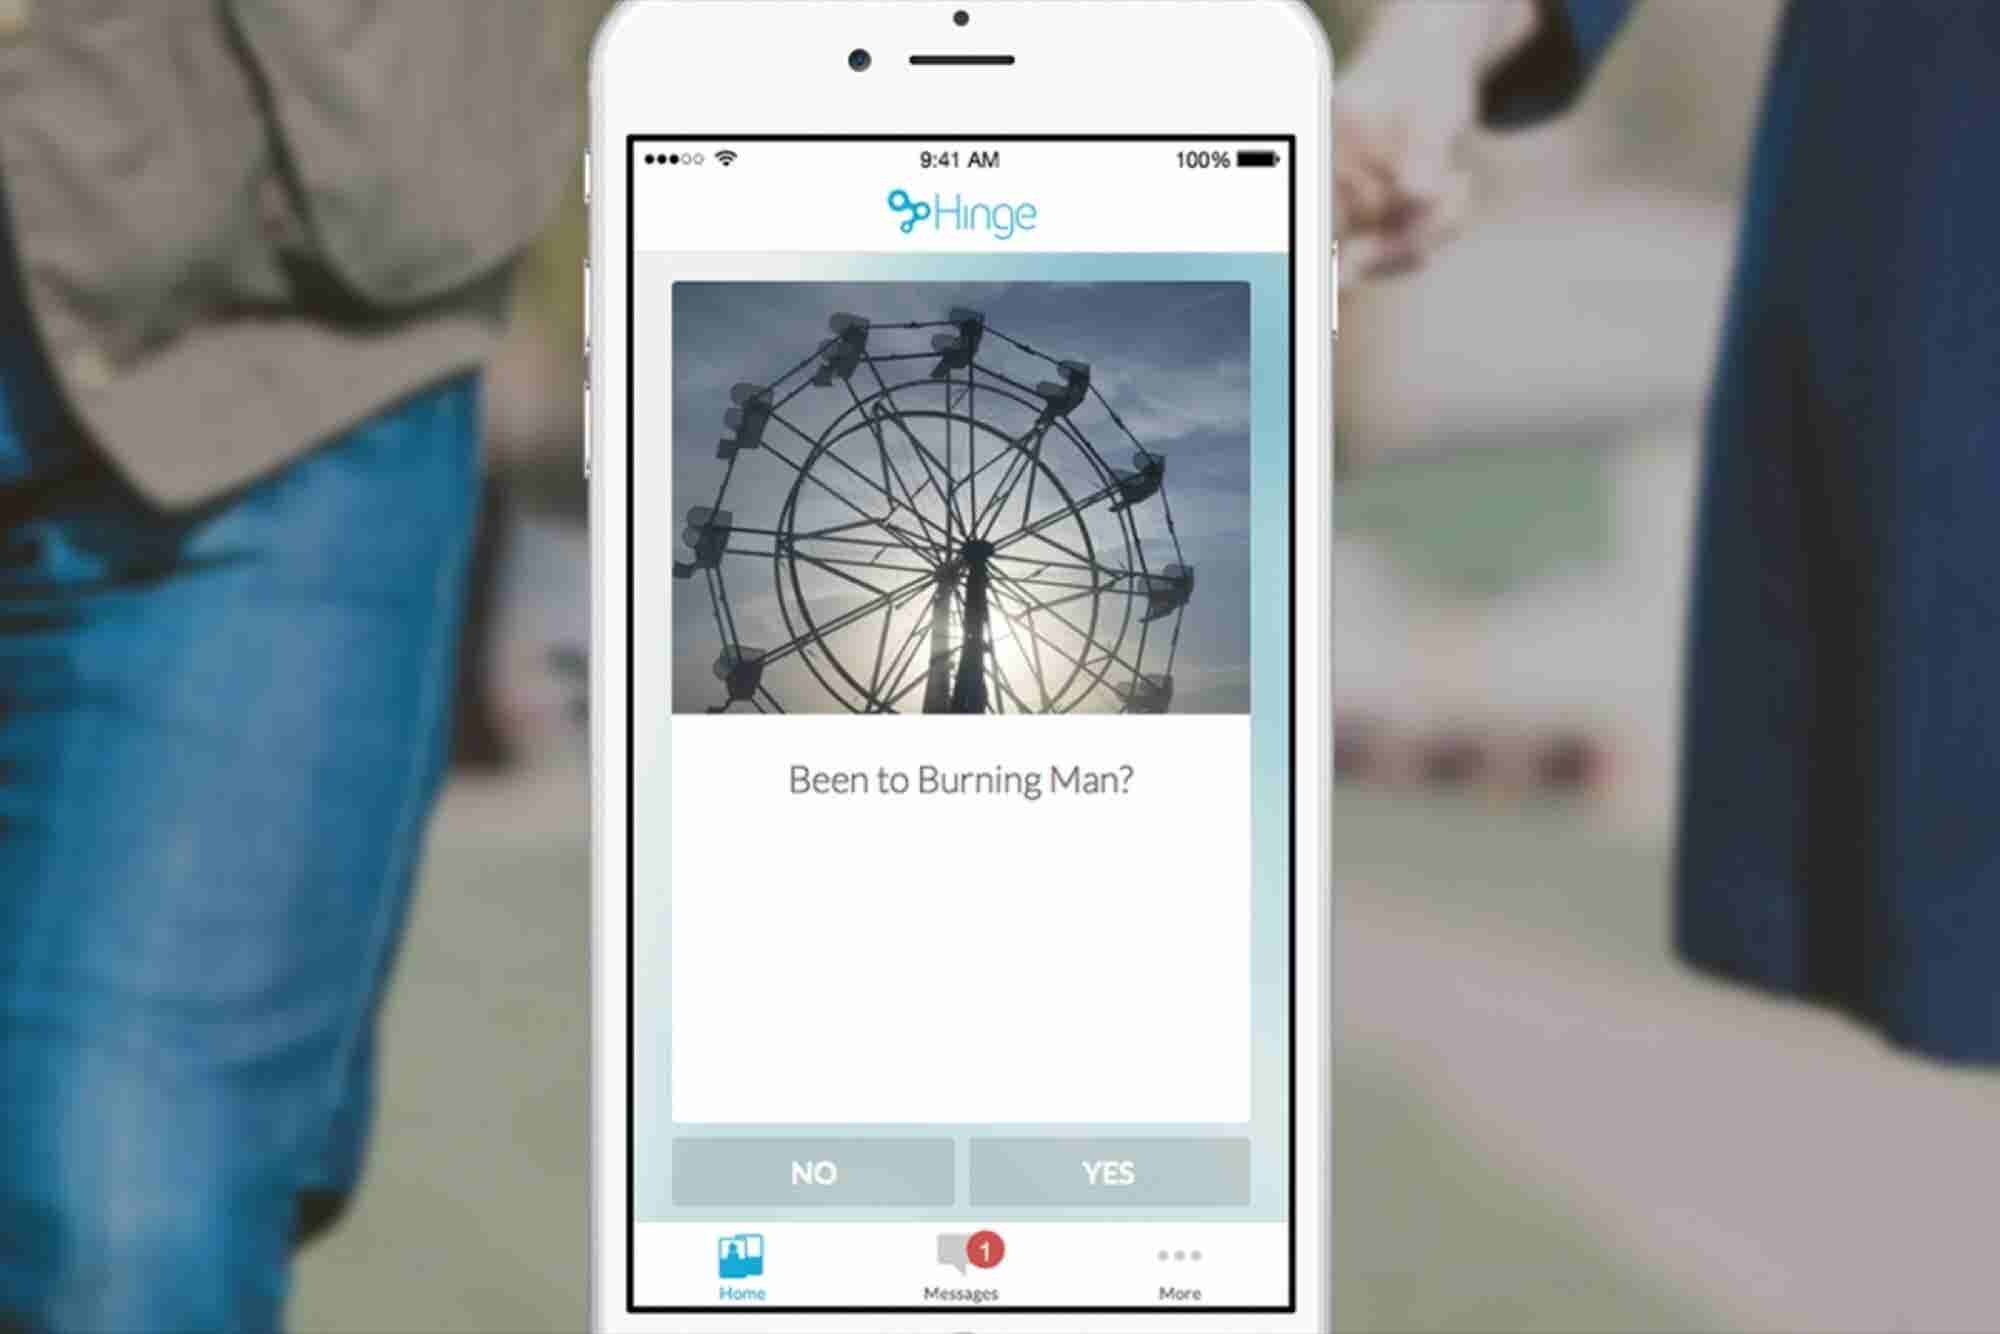 Dating App Hinge Now Lets Users Connect Over 'Shared Events,' Including Being Suspended From School